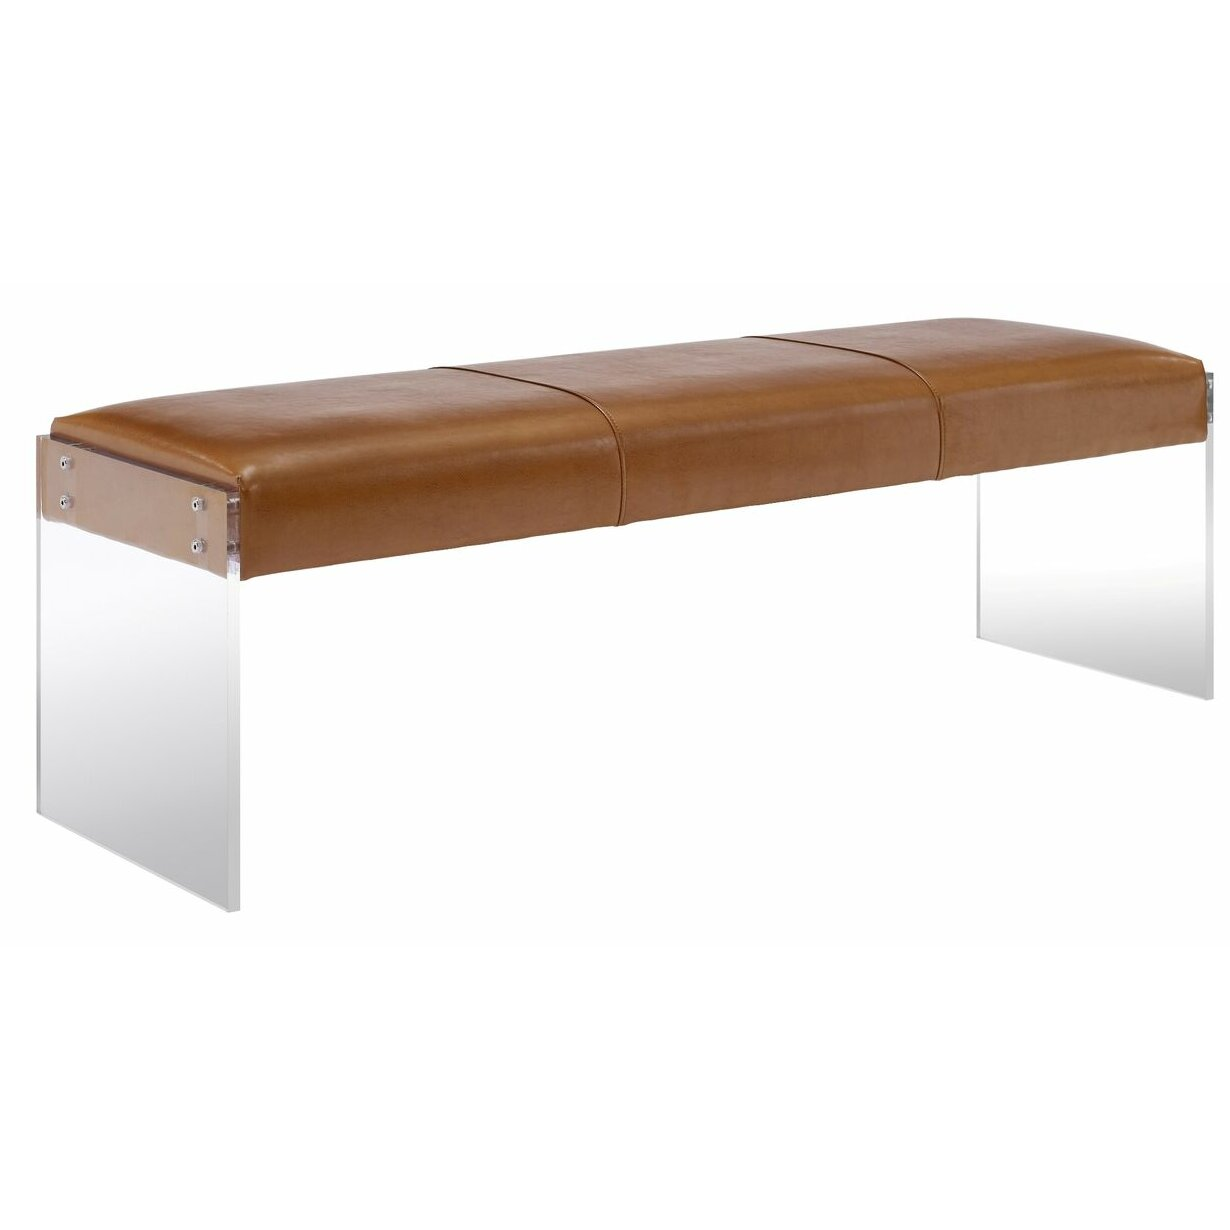 Wayfair Furniture Benches